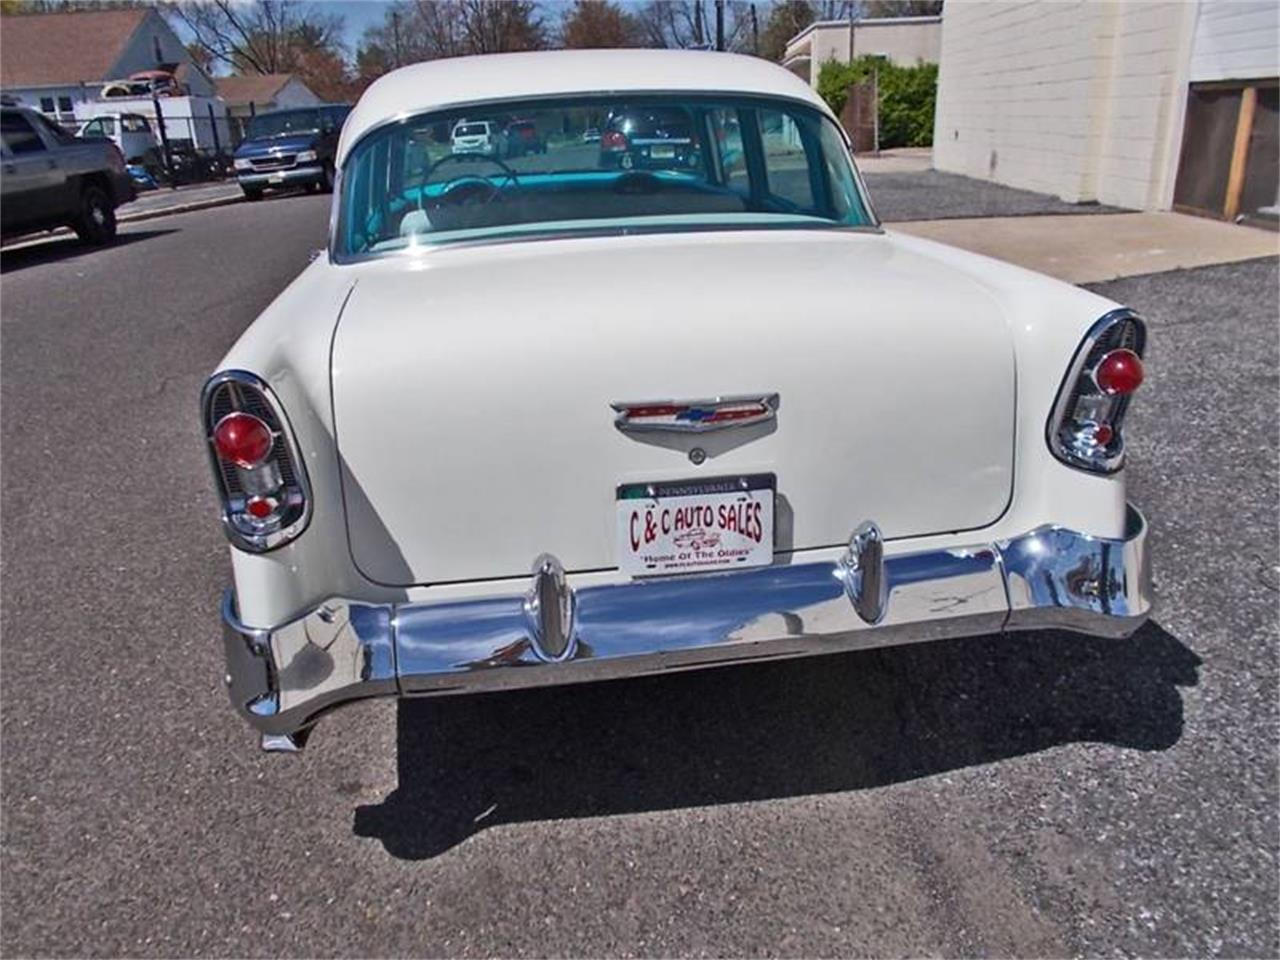 Large Picture of Classic 1956 Bel Air located in New Jersey - $19,900.00 Offered by C & C Auto Sales - NBP8